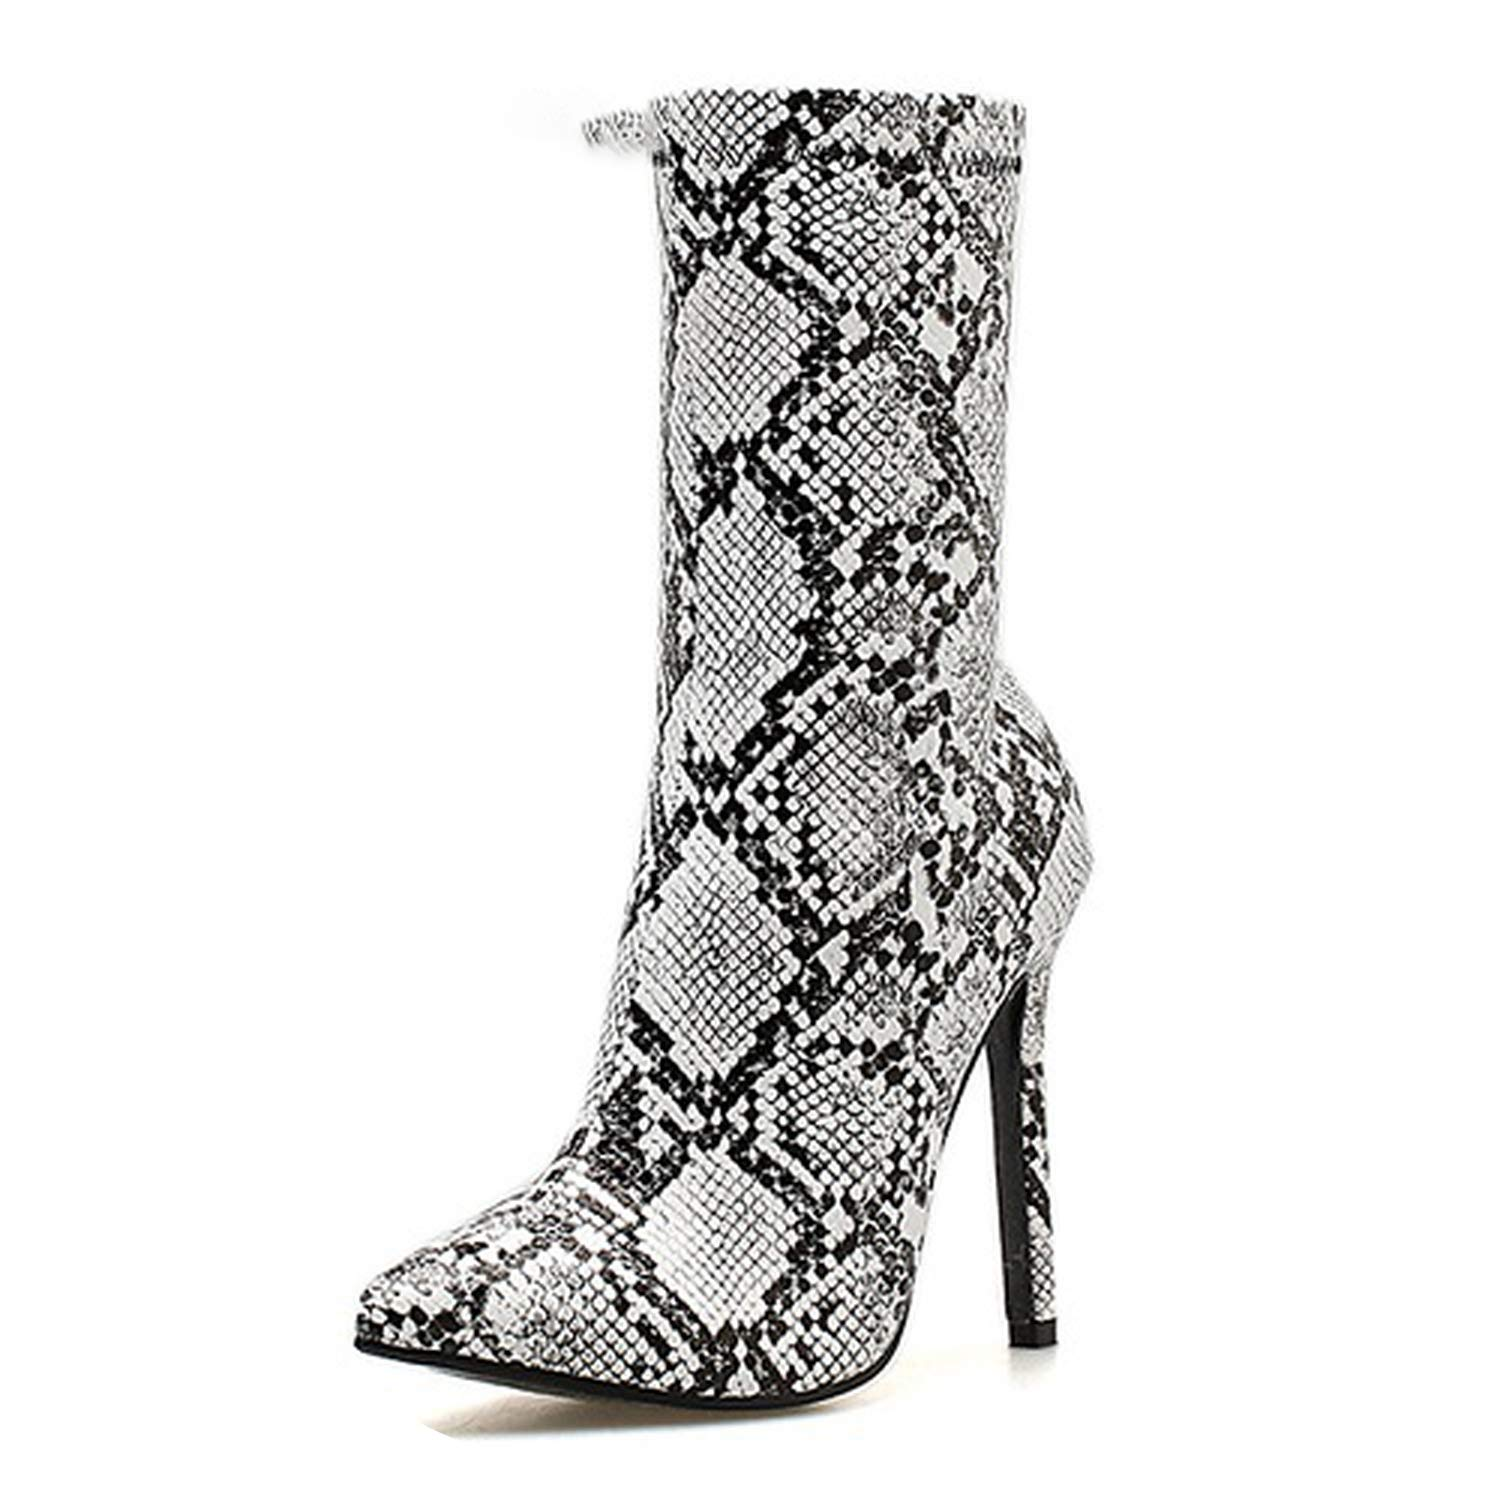 Men's/Women's Women Zipper Boots Snake Print Ankle Ankle Ankle Boots High Heels Pointed Toe Ladies Sexy Shoes Chelsea Boots Good design Sales Italy Don't worry when shopping WB26387 831688